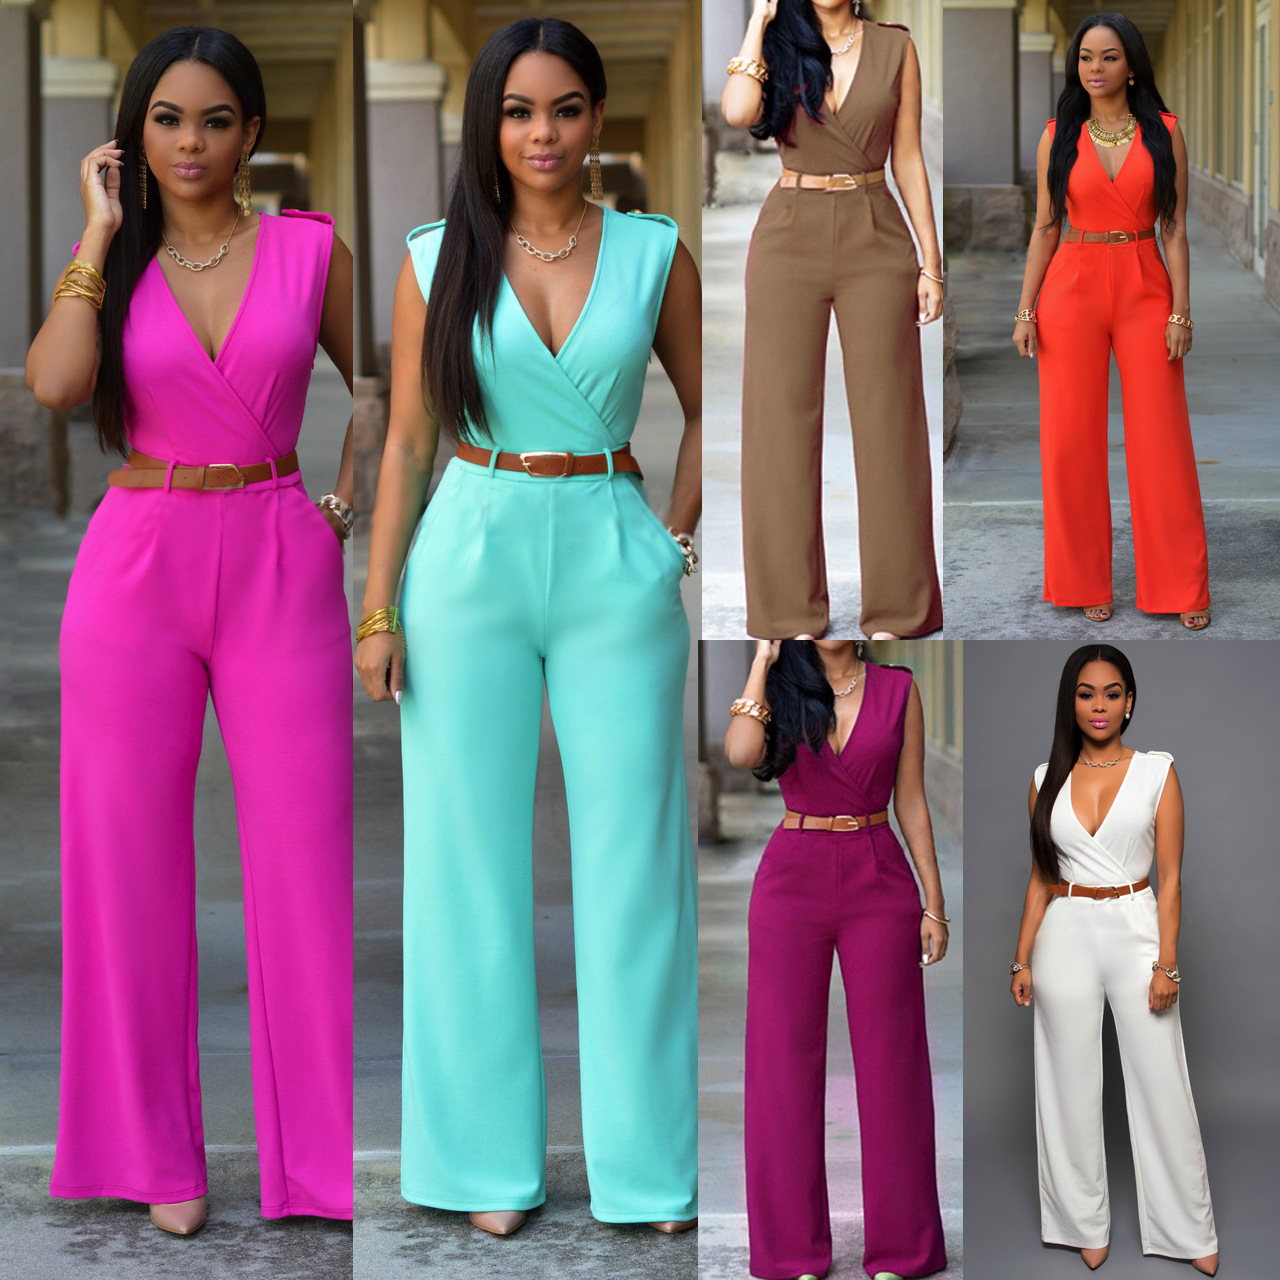 58f9780fa6e3 AliExpress Top Selling European and American Style Fashion Women s Loose  Casual Pants Leisure Jumpsuits (with Belt)-in Jumpsuits from Women s  Clothing on ...